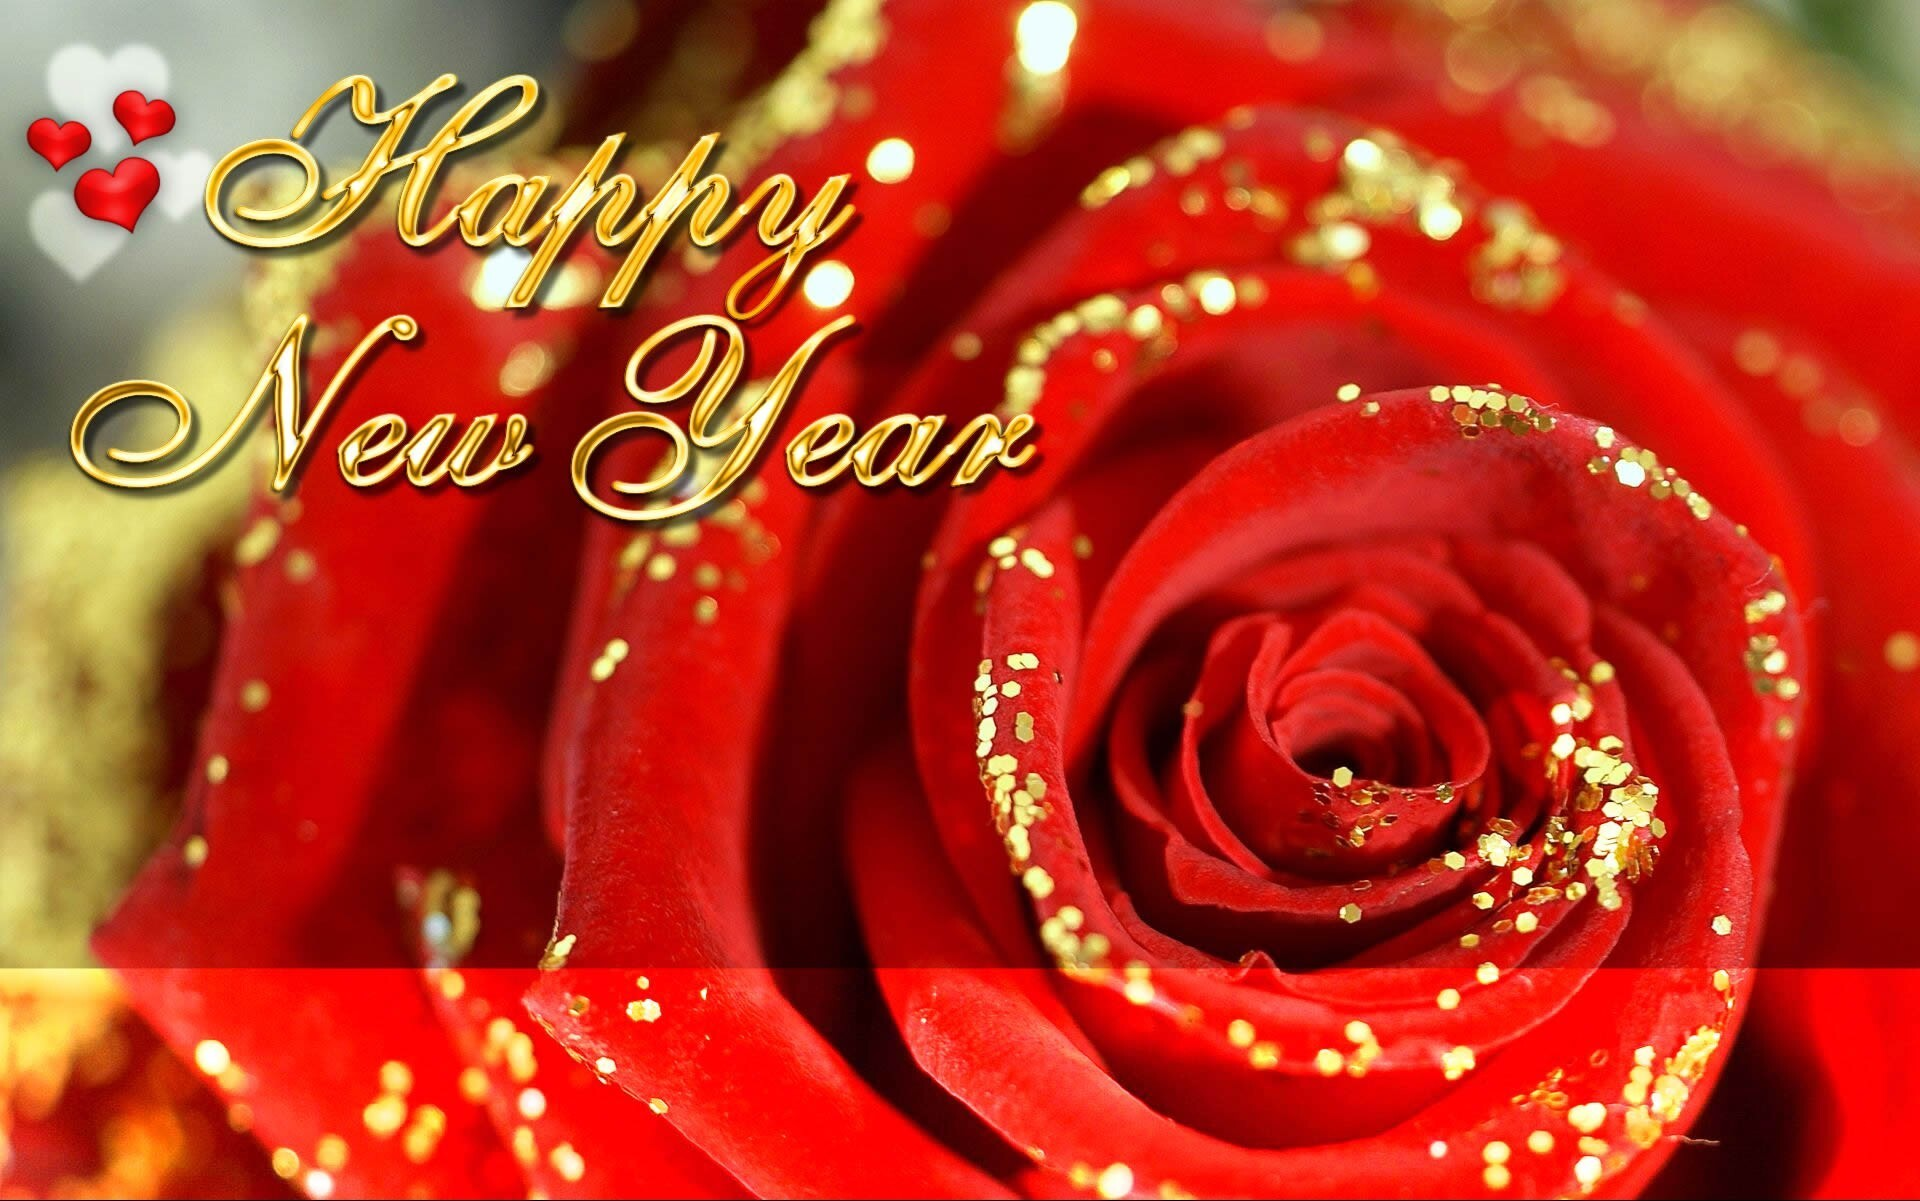 Happy_New_Year_Red_Rose_Wallpaper.jpg